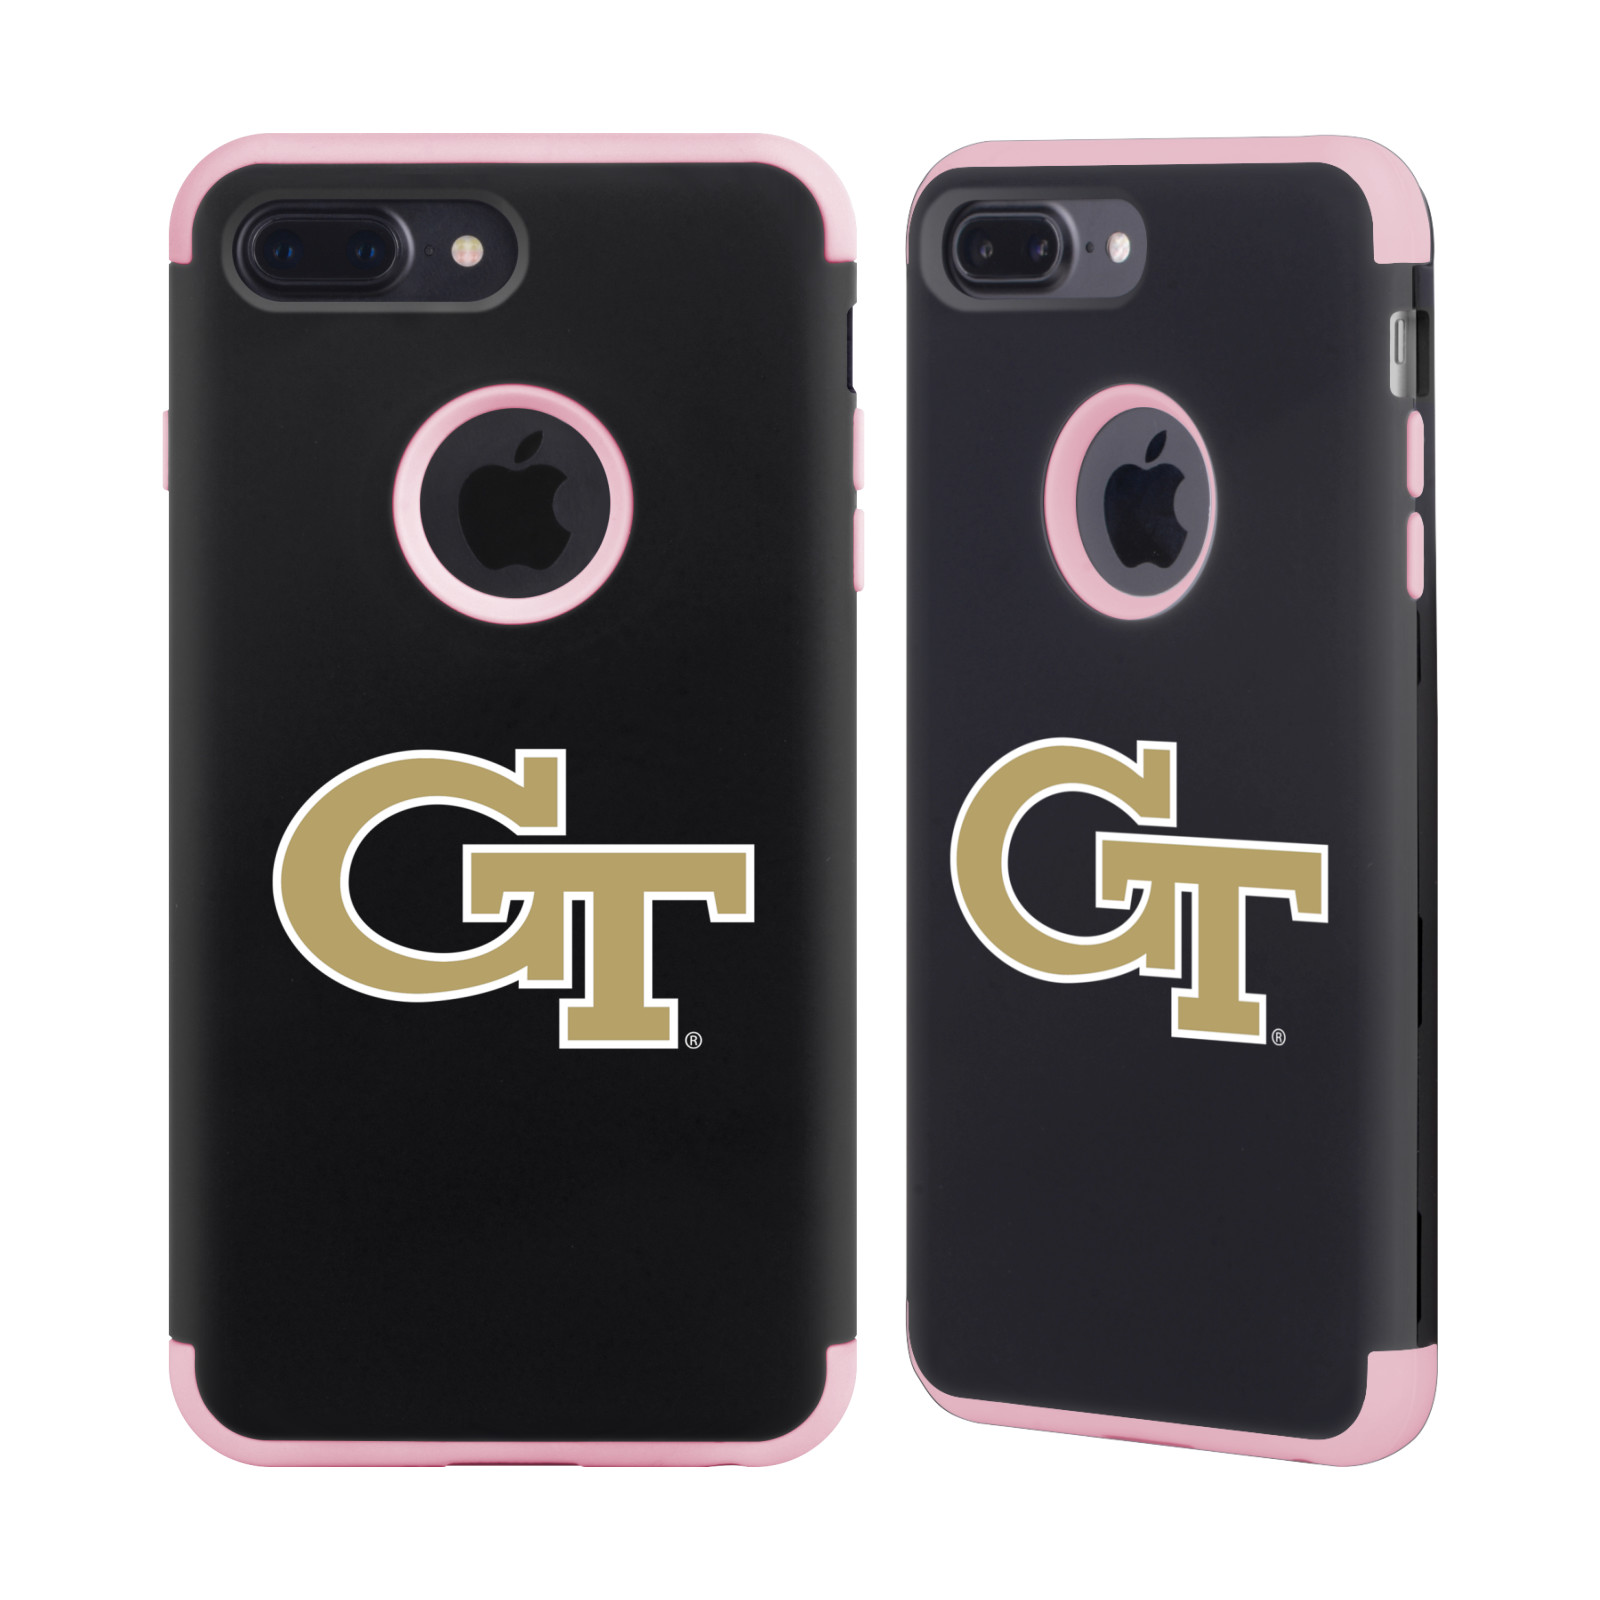 GEORGIA-INSTITUTE-OF-TECHNOLOGY-2-LIGHT-PINK-GUARDIAN-CASE-FOR-APPLE-PHONES